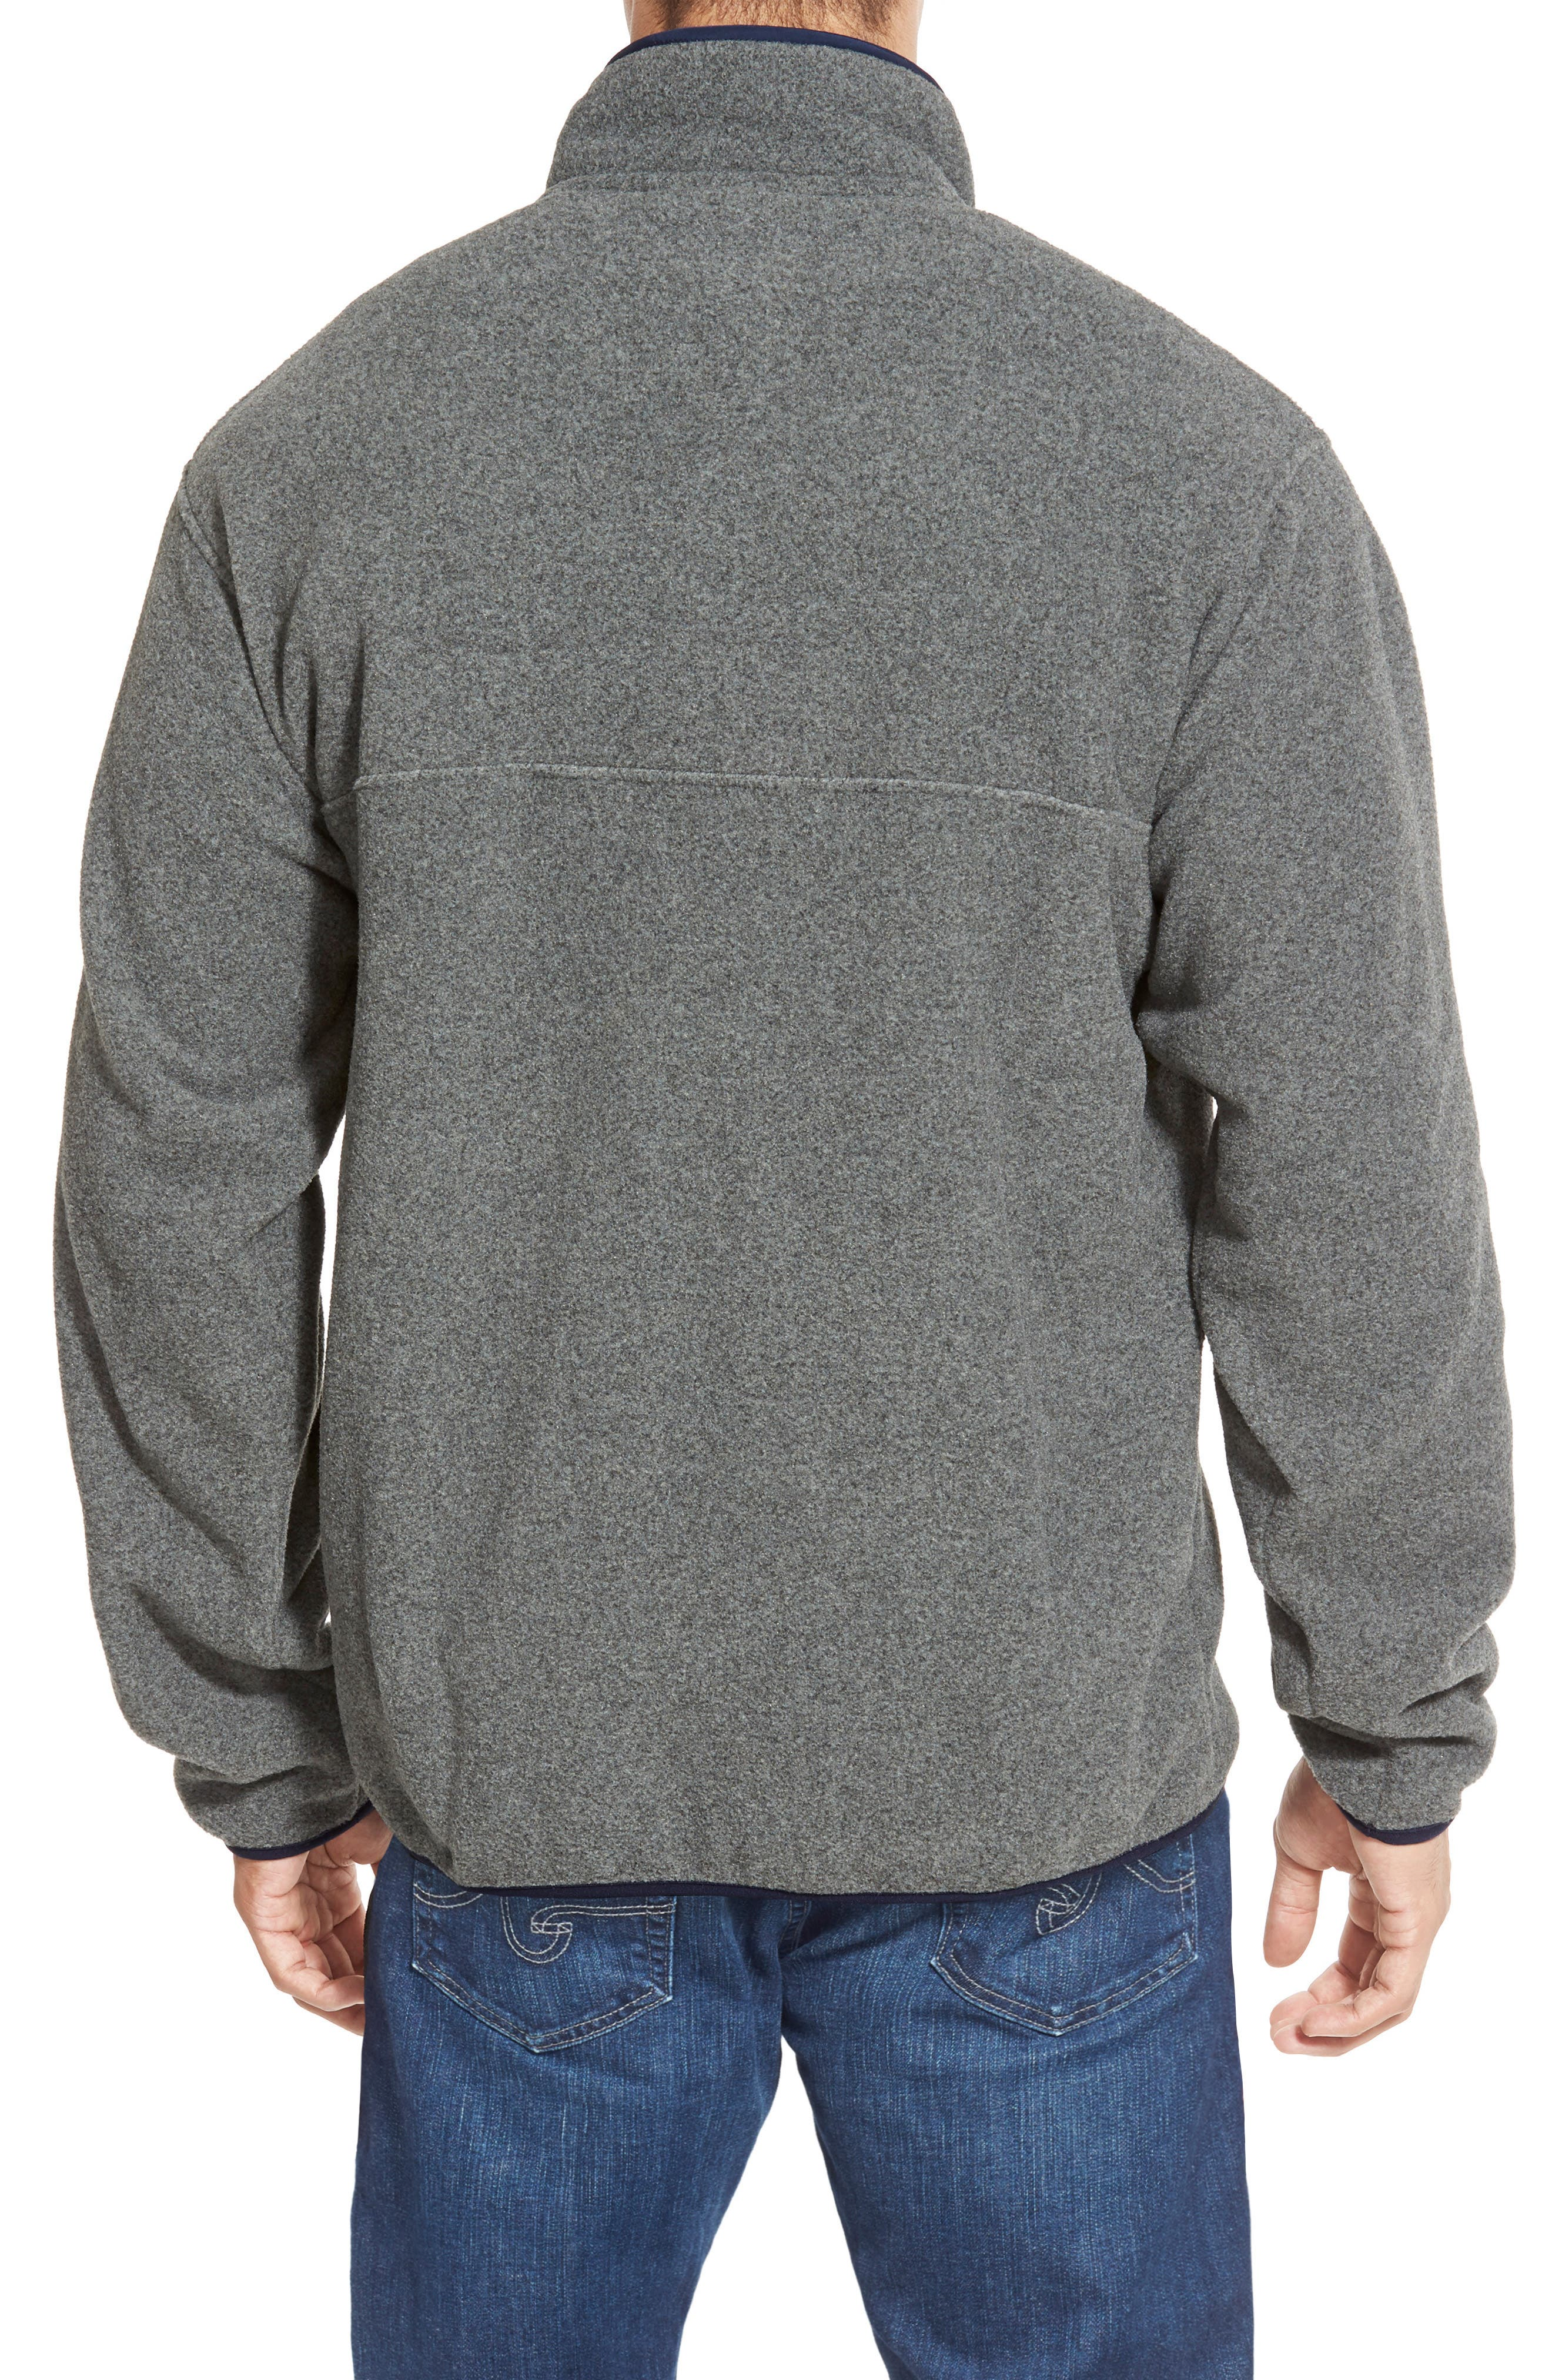 Synchilla<sup>®</sup> Snap-T<sup>®</sup> Fleece Pullover,                             Alternate thumbnail 2, color,                             NICKEL/ NAVY BLUE